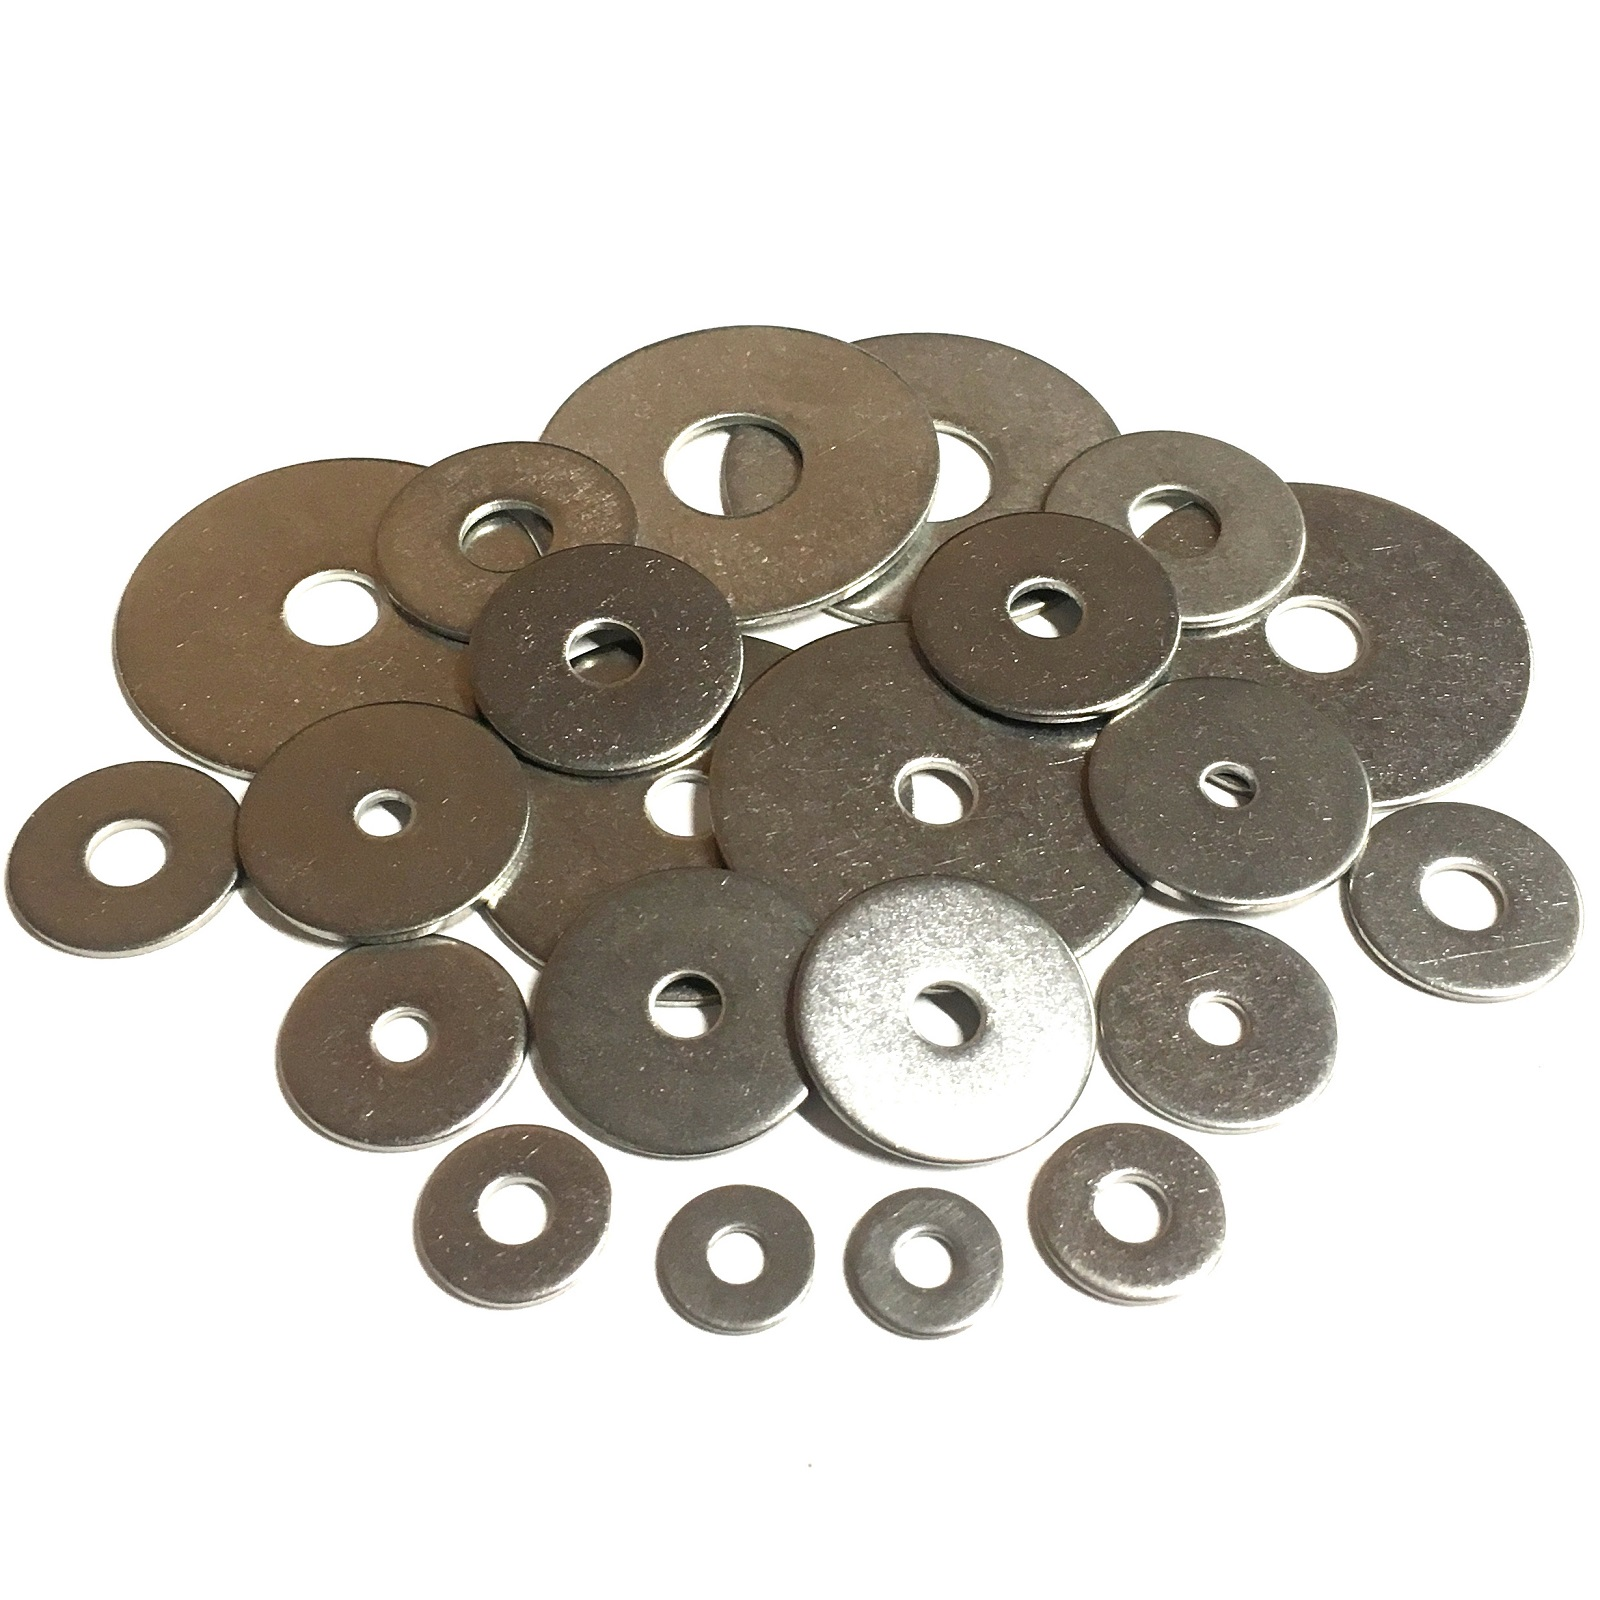 15 or 20 mm OD M4 4mm Stainless Steel Penny Repair Washers Packs 10 or 20